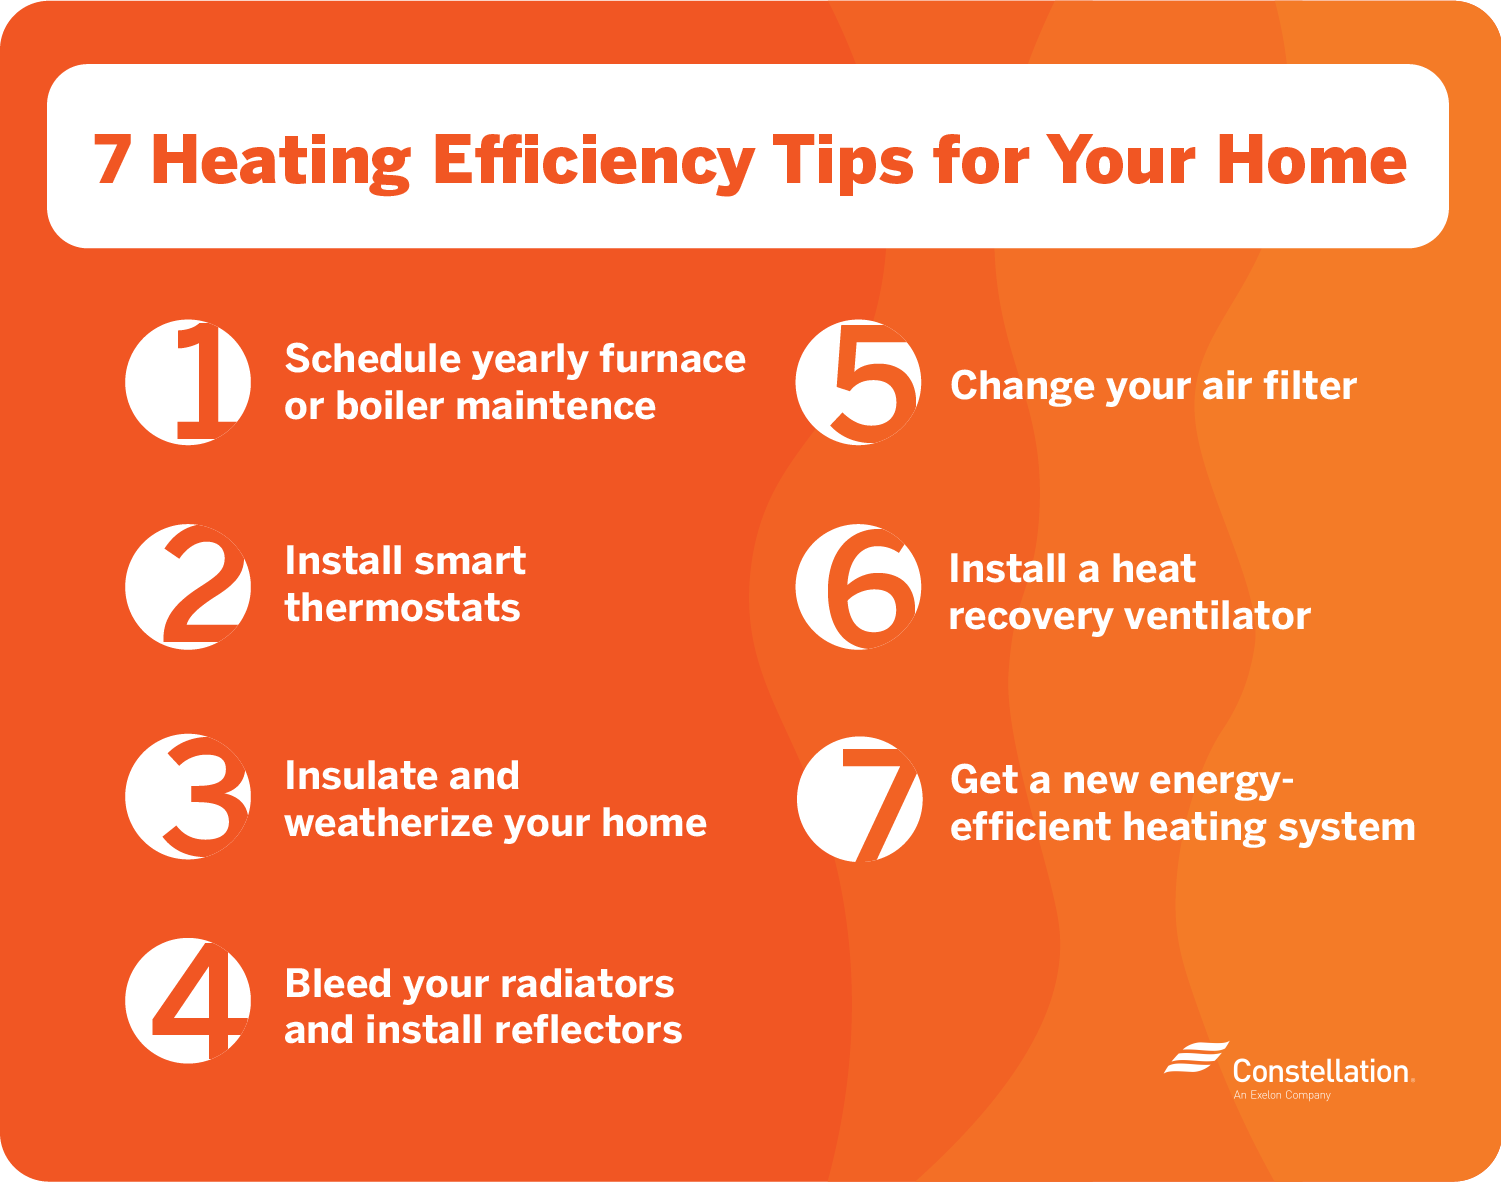 7 heating efficiency tips for your home